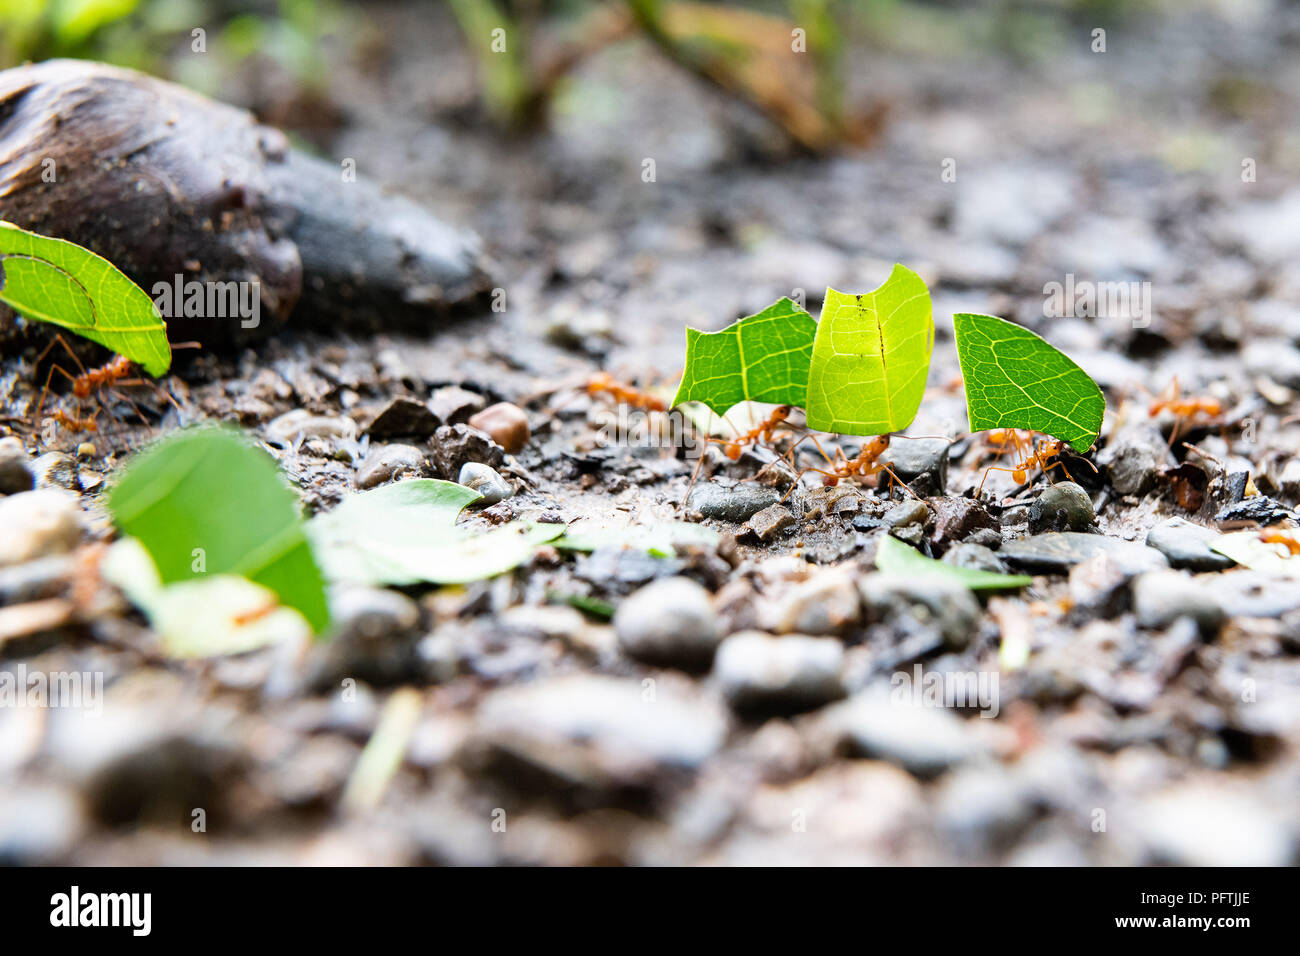 Ants carrying leaves - Stock Image